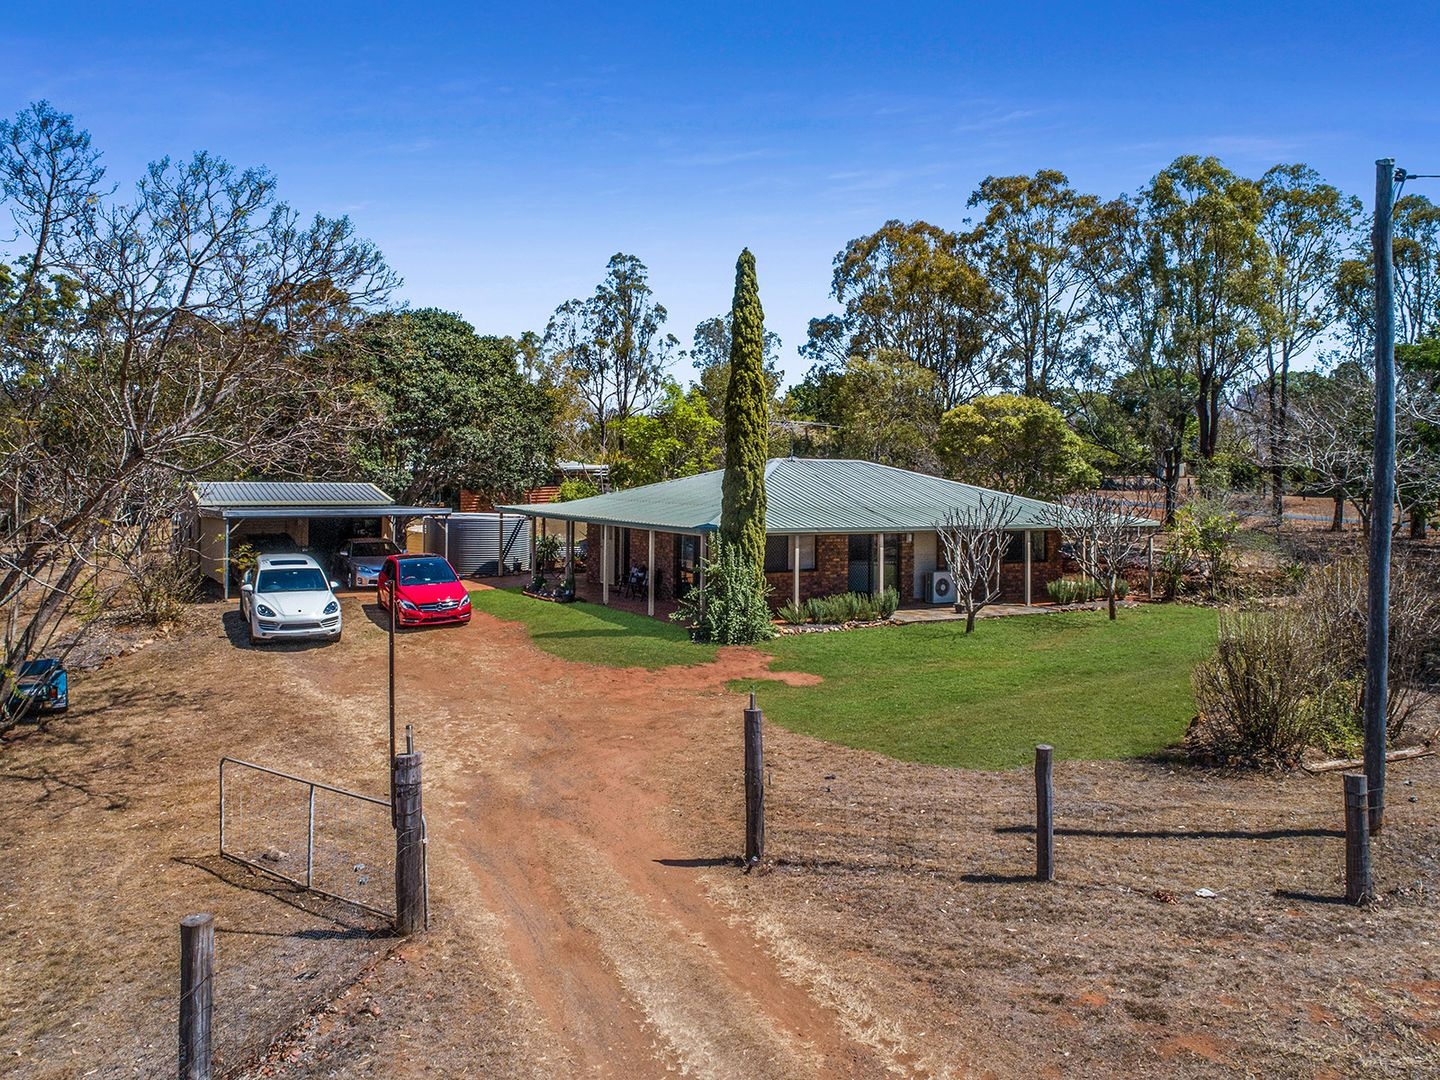 61 Lockyer View Rd, Wivenhoe Pocket QLD 4306, Image 0